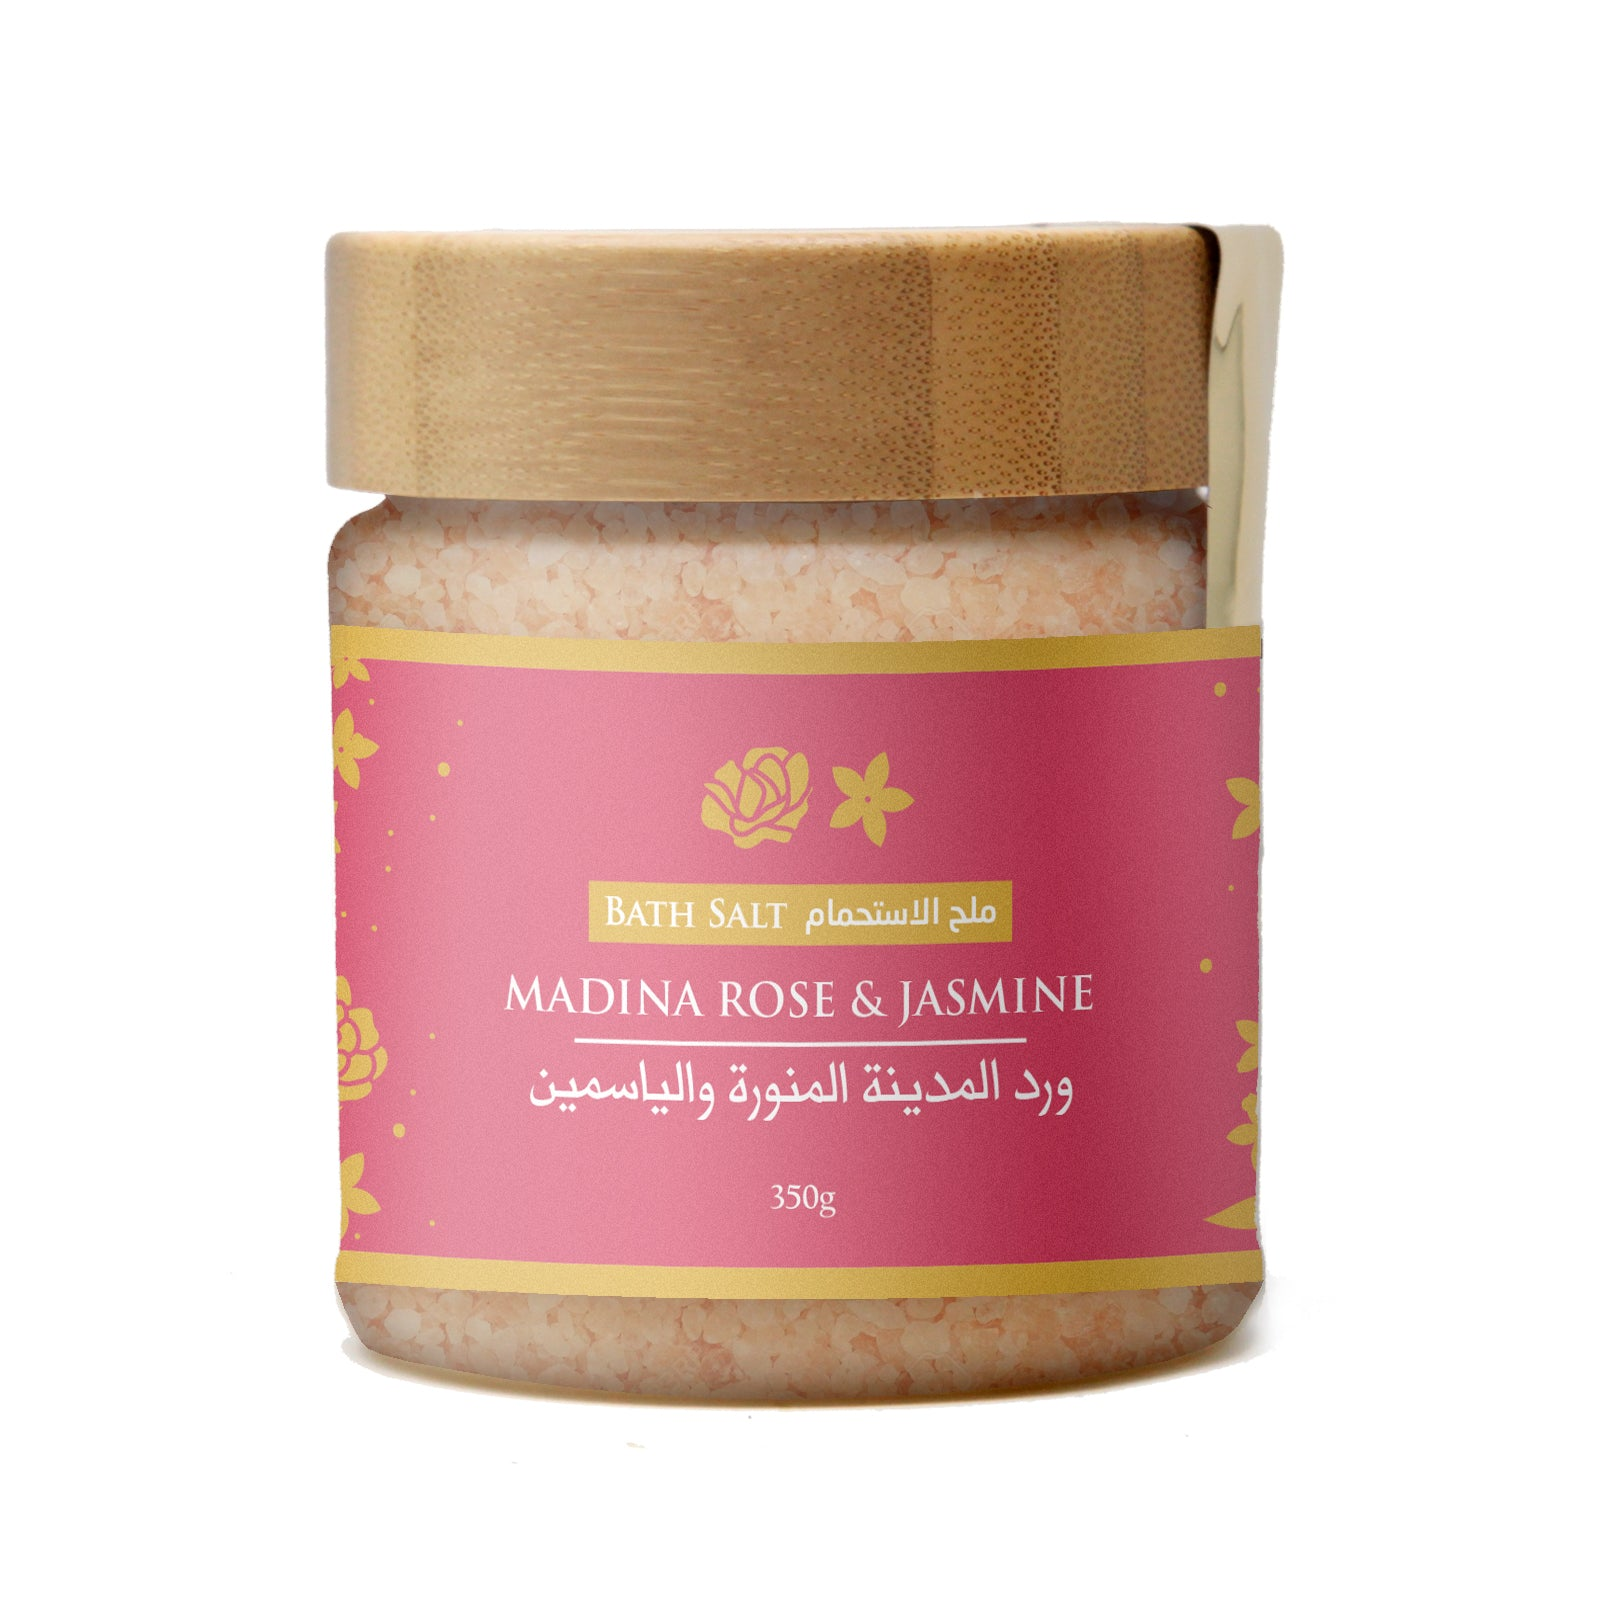 Madina Rose and Jasmine Bath Salt - 350g